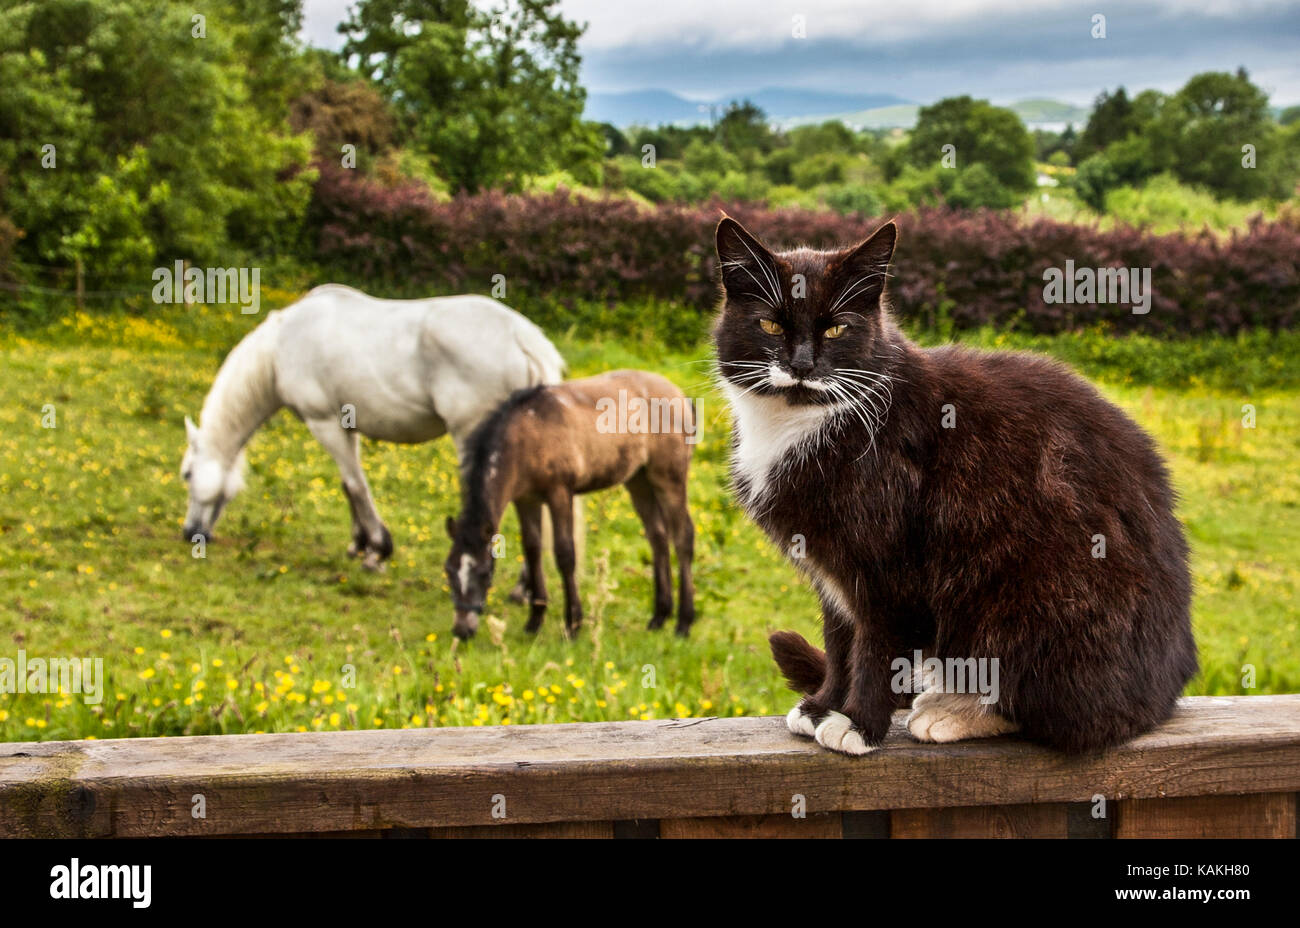 A domestic black and white  cat and white Kalamare horse with colt, Bantry, Ireland,  Europe, FS 6.93 MB  300ppi - Stock Image